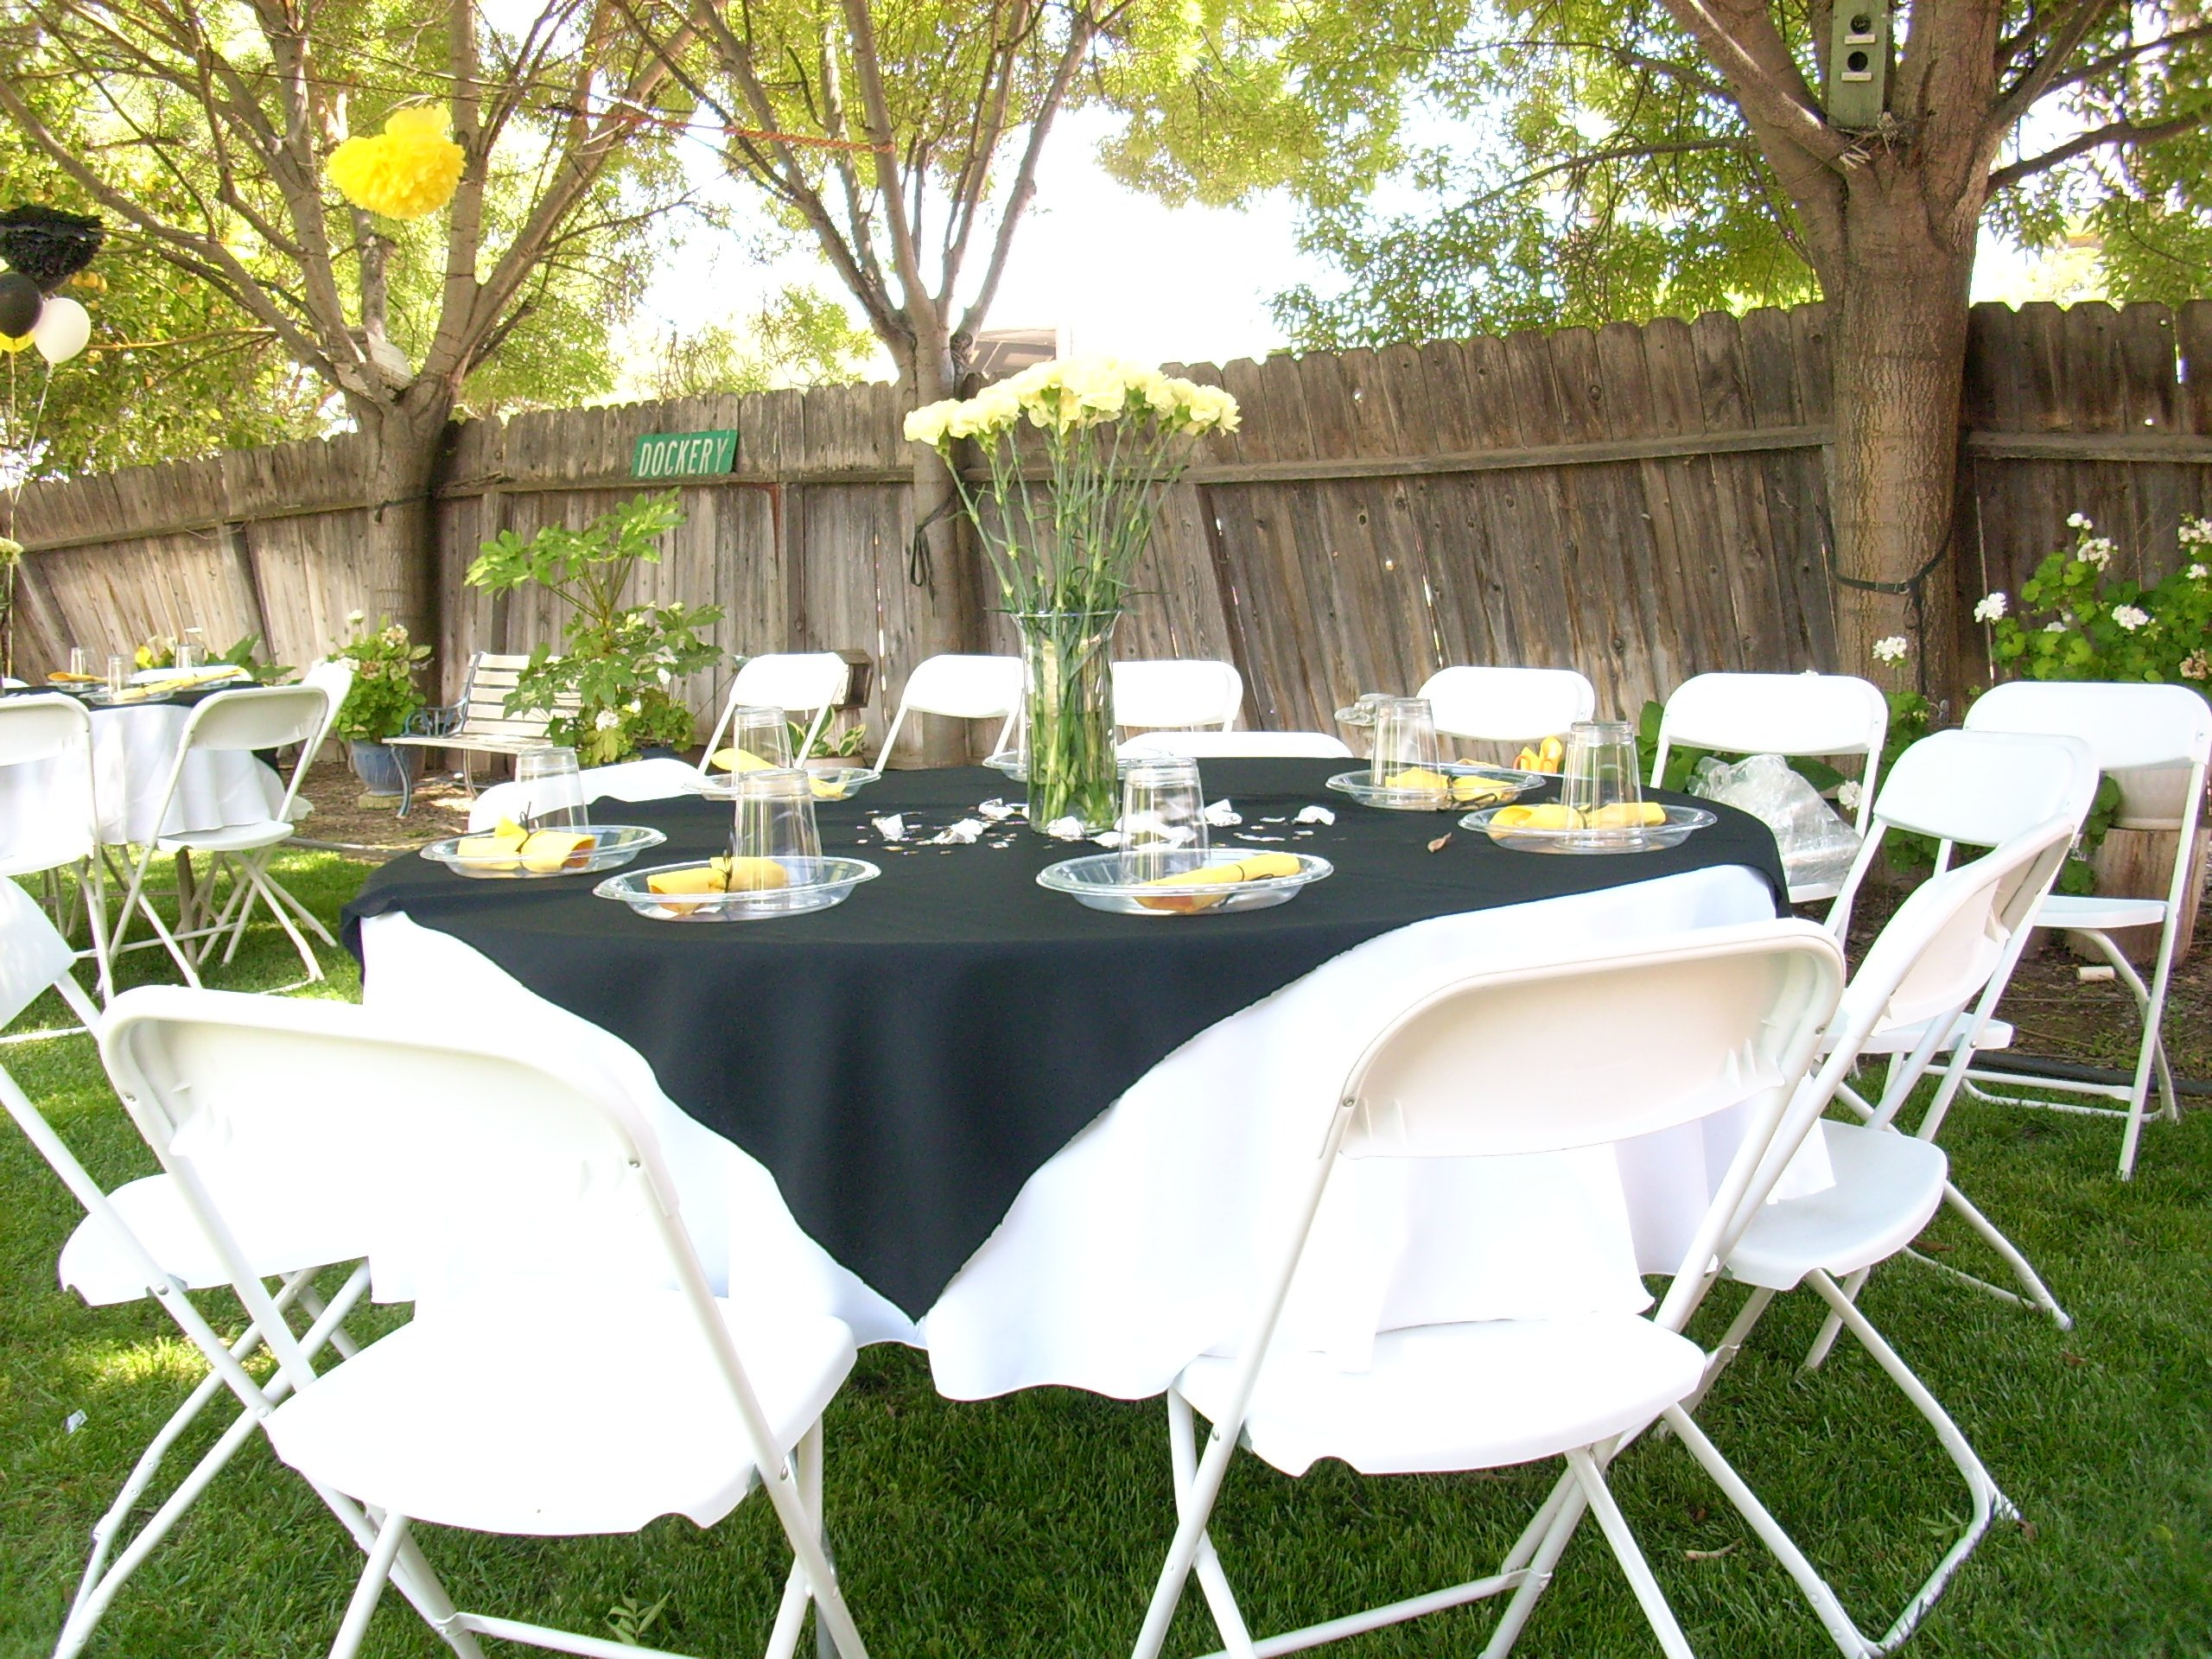 near for events area rental corporate party and bay setting weddings chair stuart event table me rentals